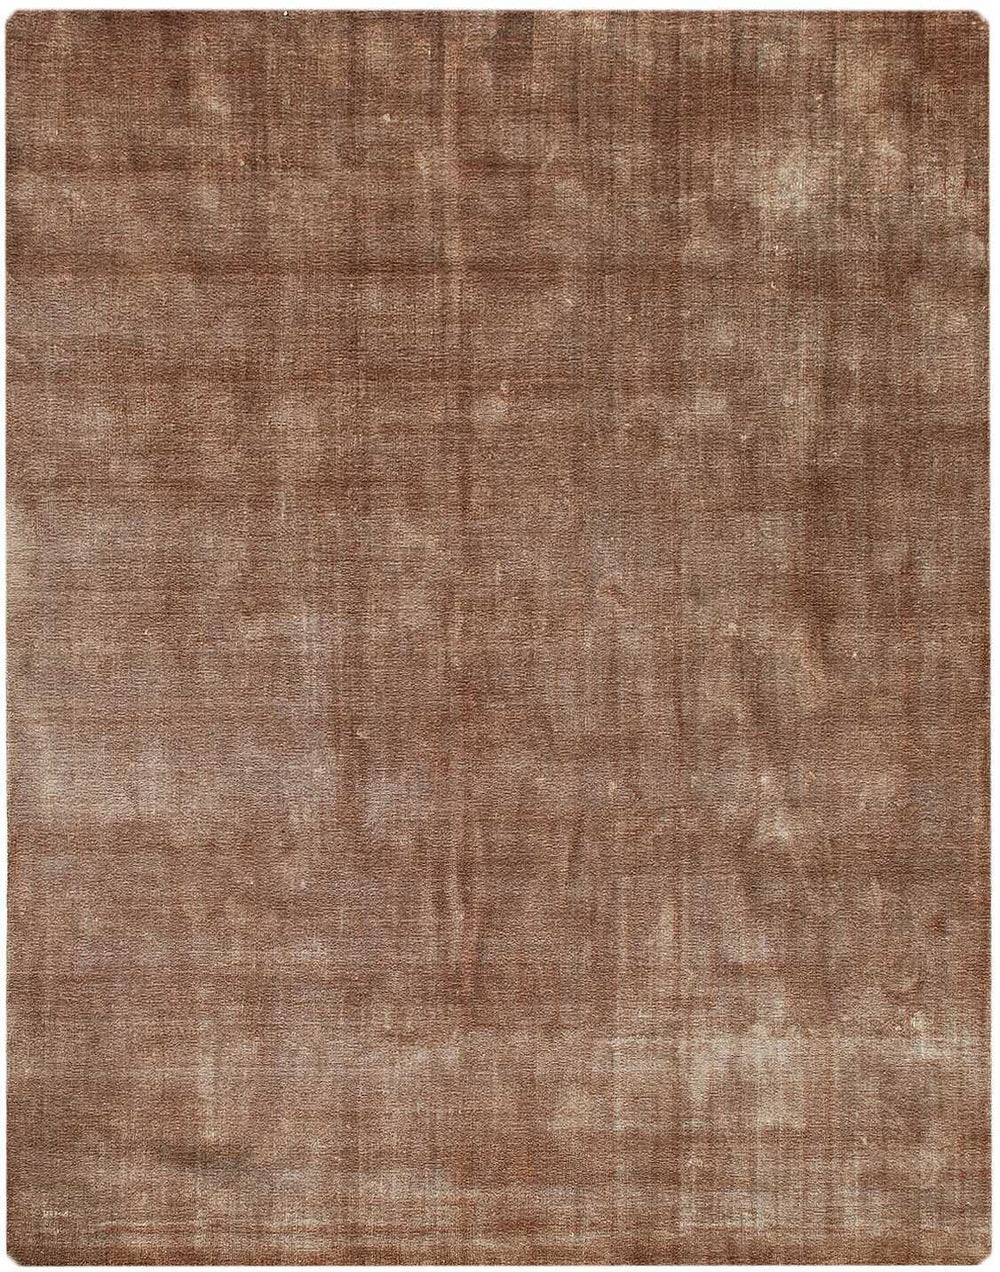 Amer Rugs Pure PUR-146 Area Rug